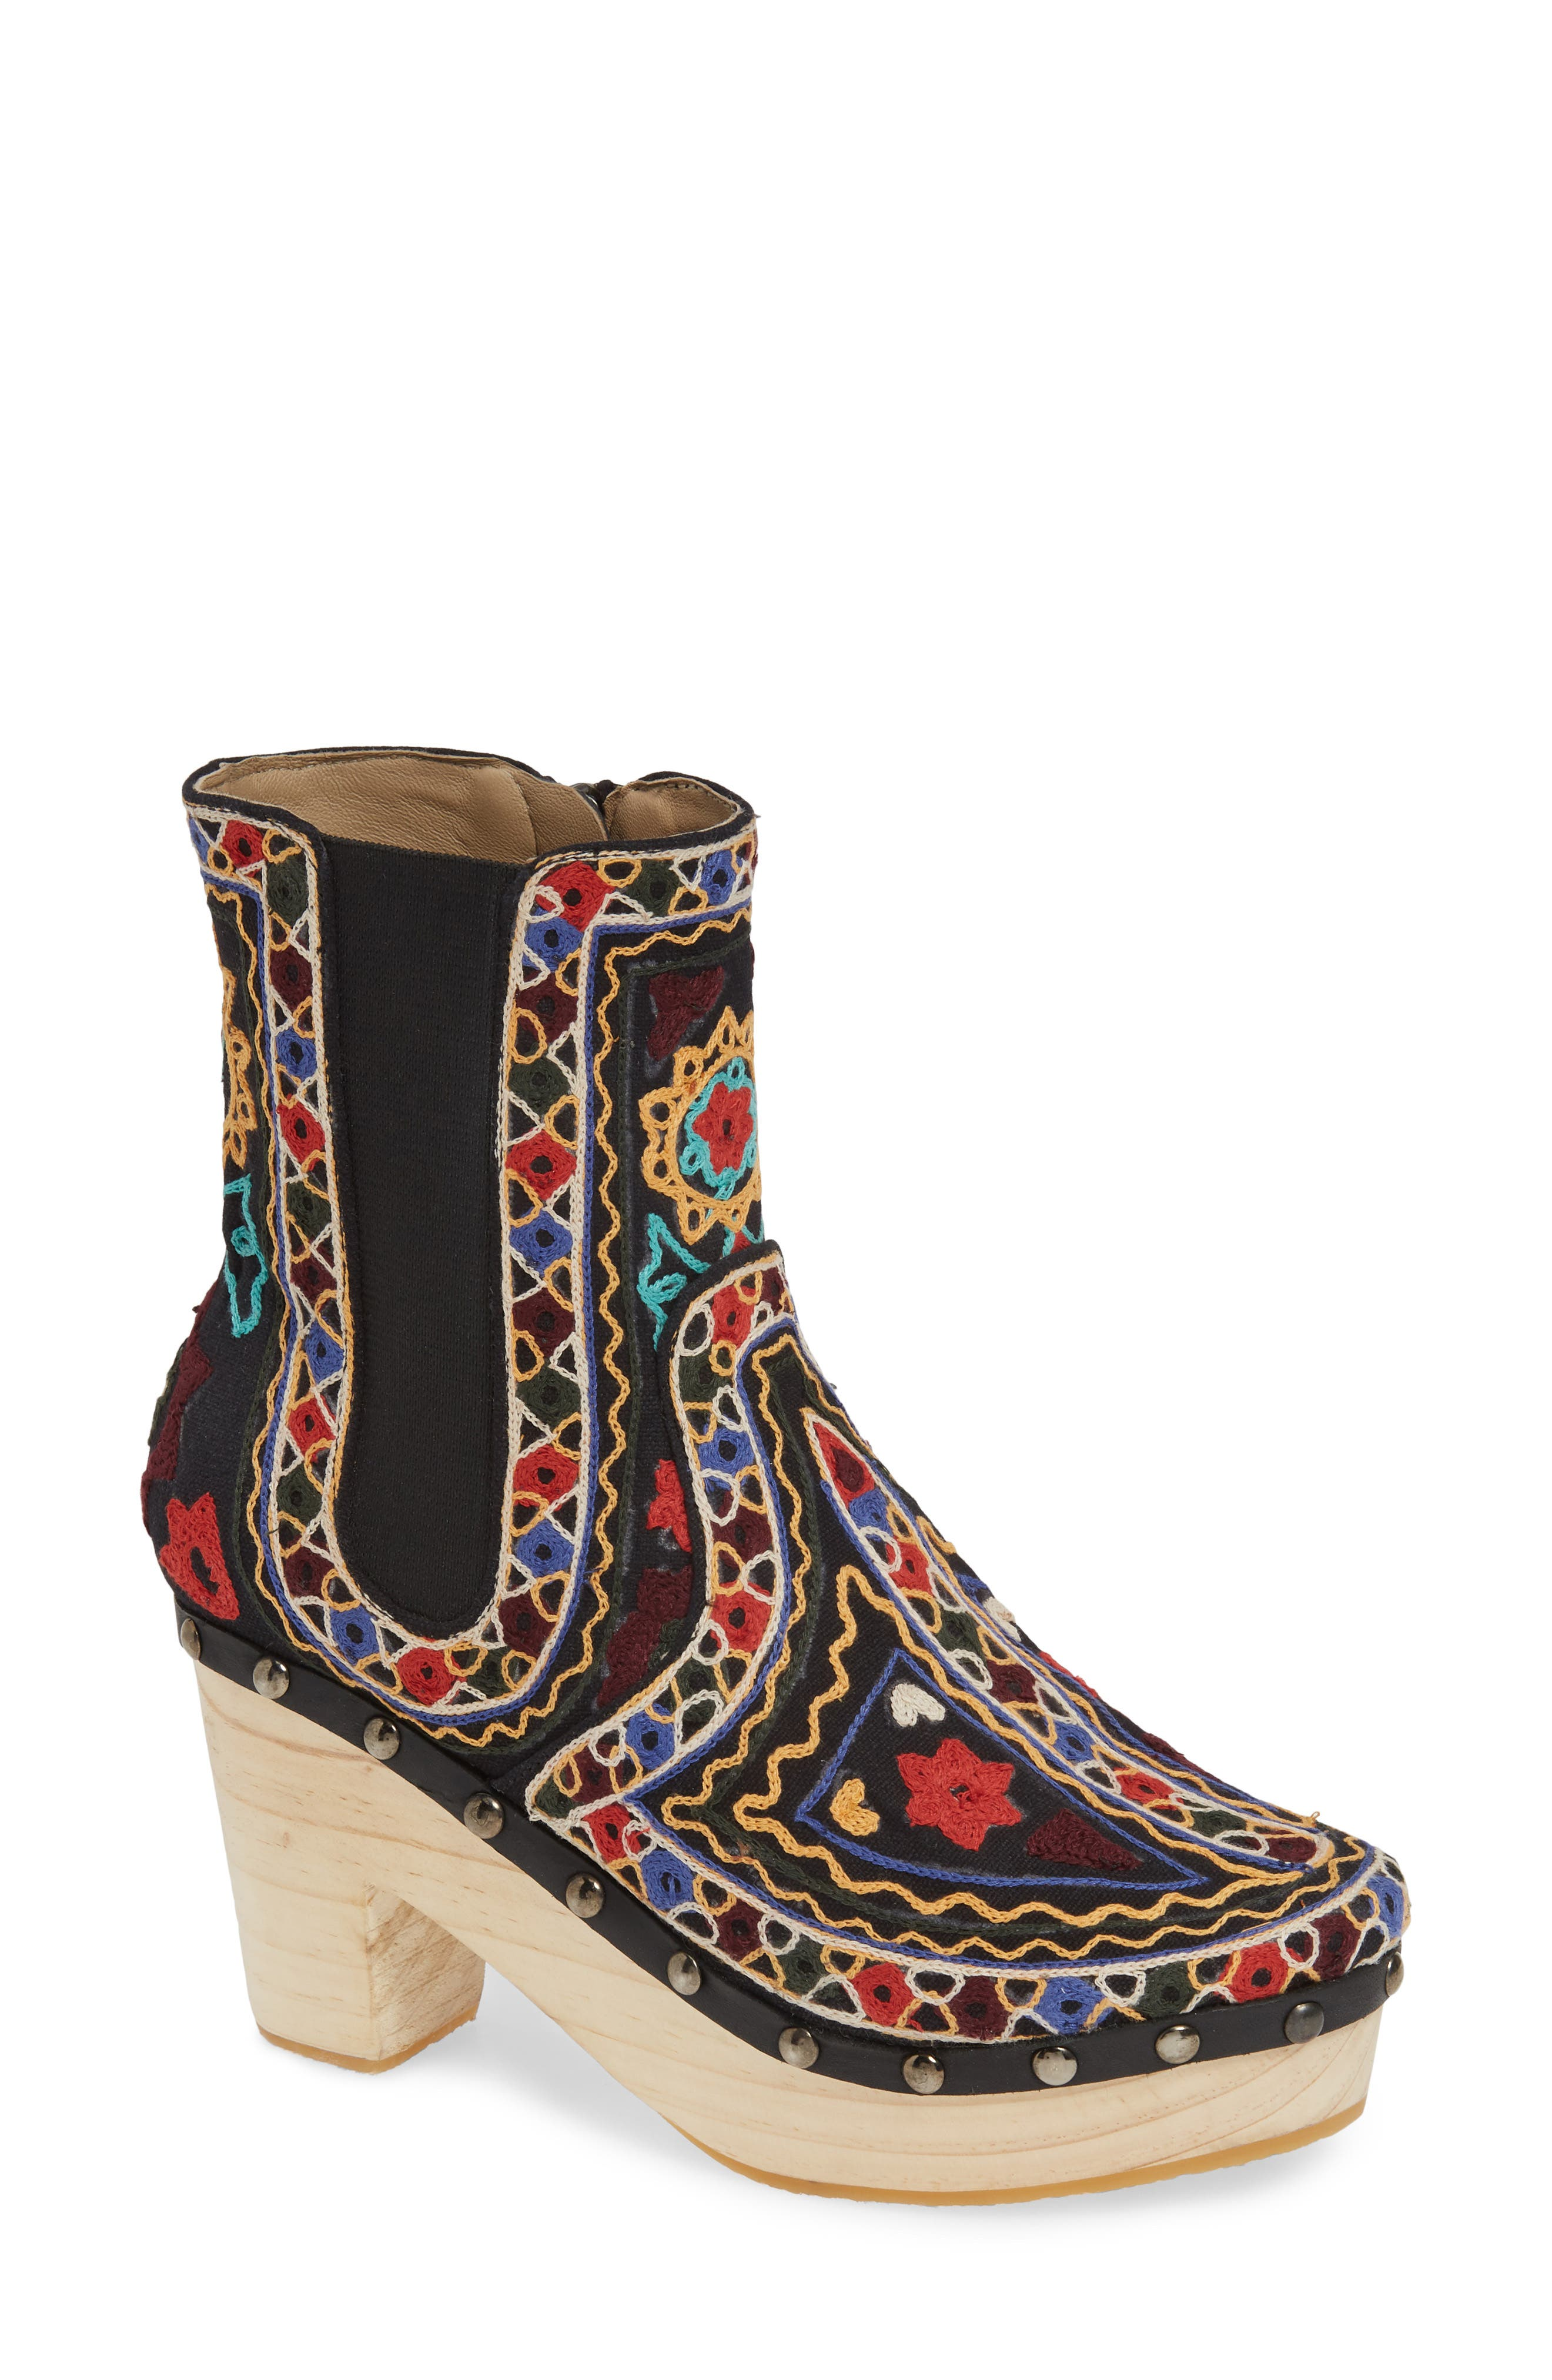 FREE PEOPLE West Johanna Clog Bootie, Main, color, BLACK EMBROIDERED FABRIC